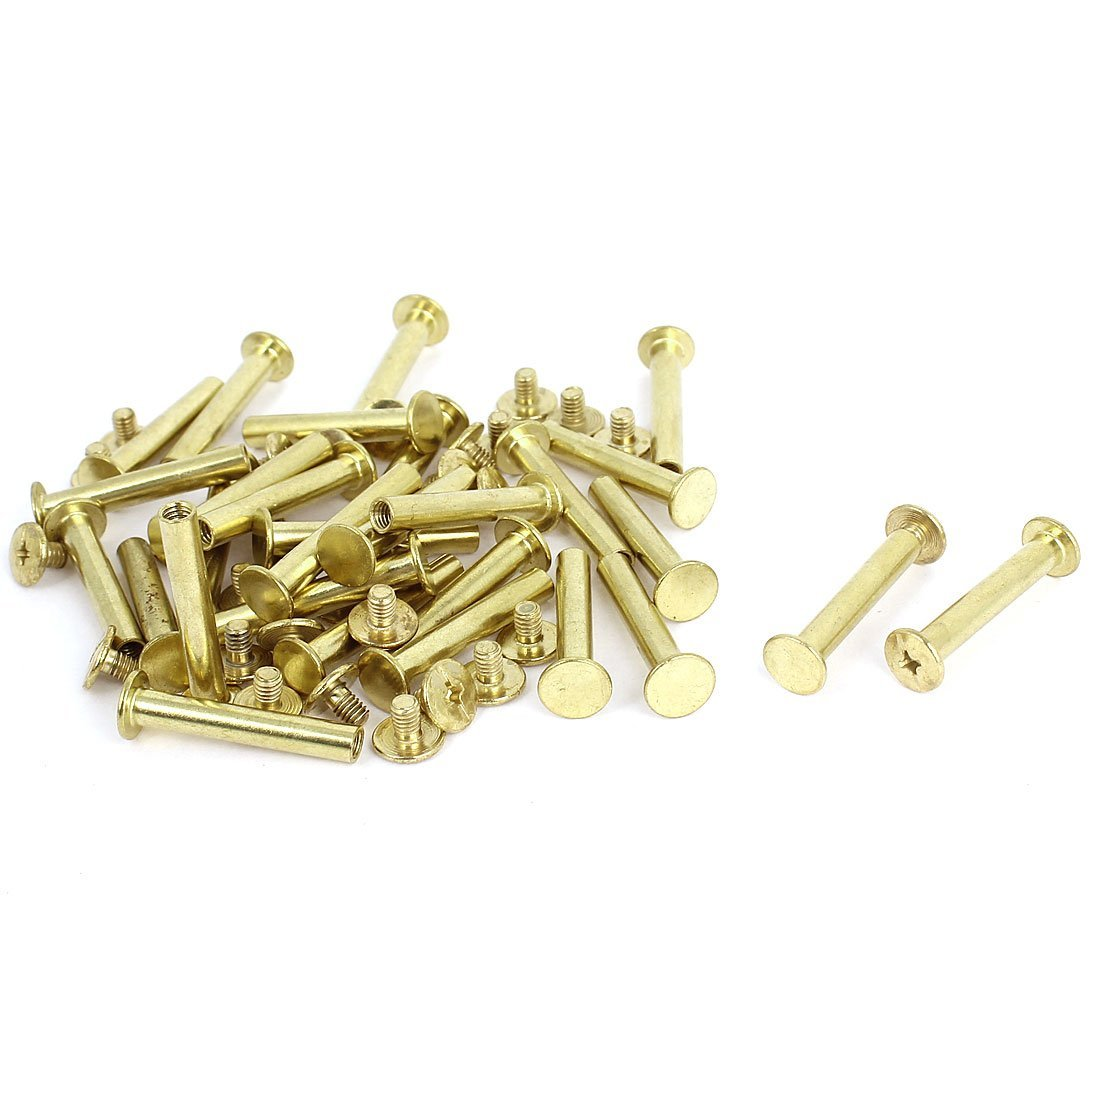 Leather Scrapbook 5x30mm Chicago Brass Plated Fixing Screw Post 30pcs